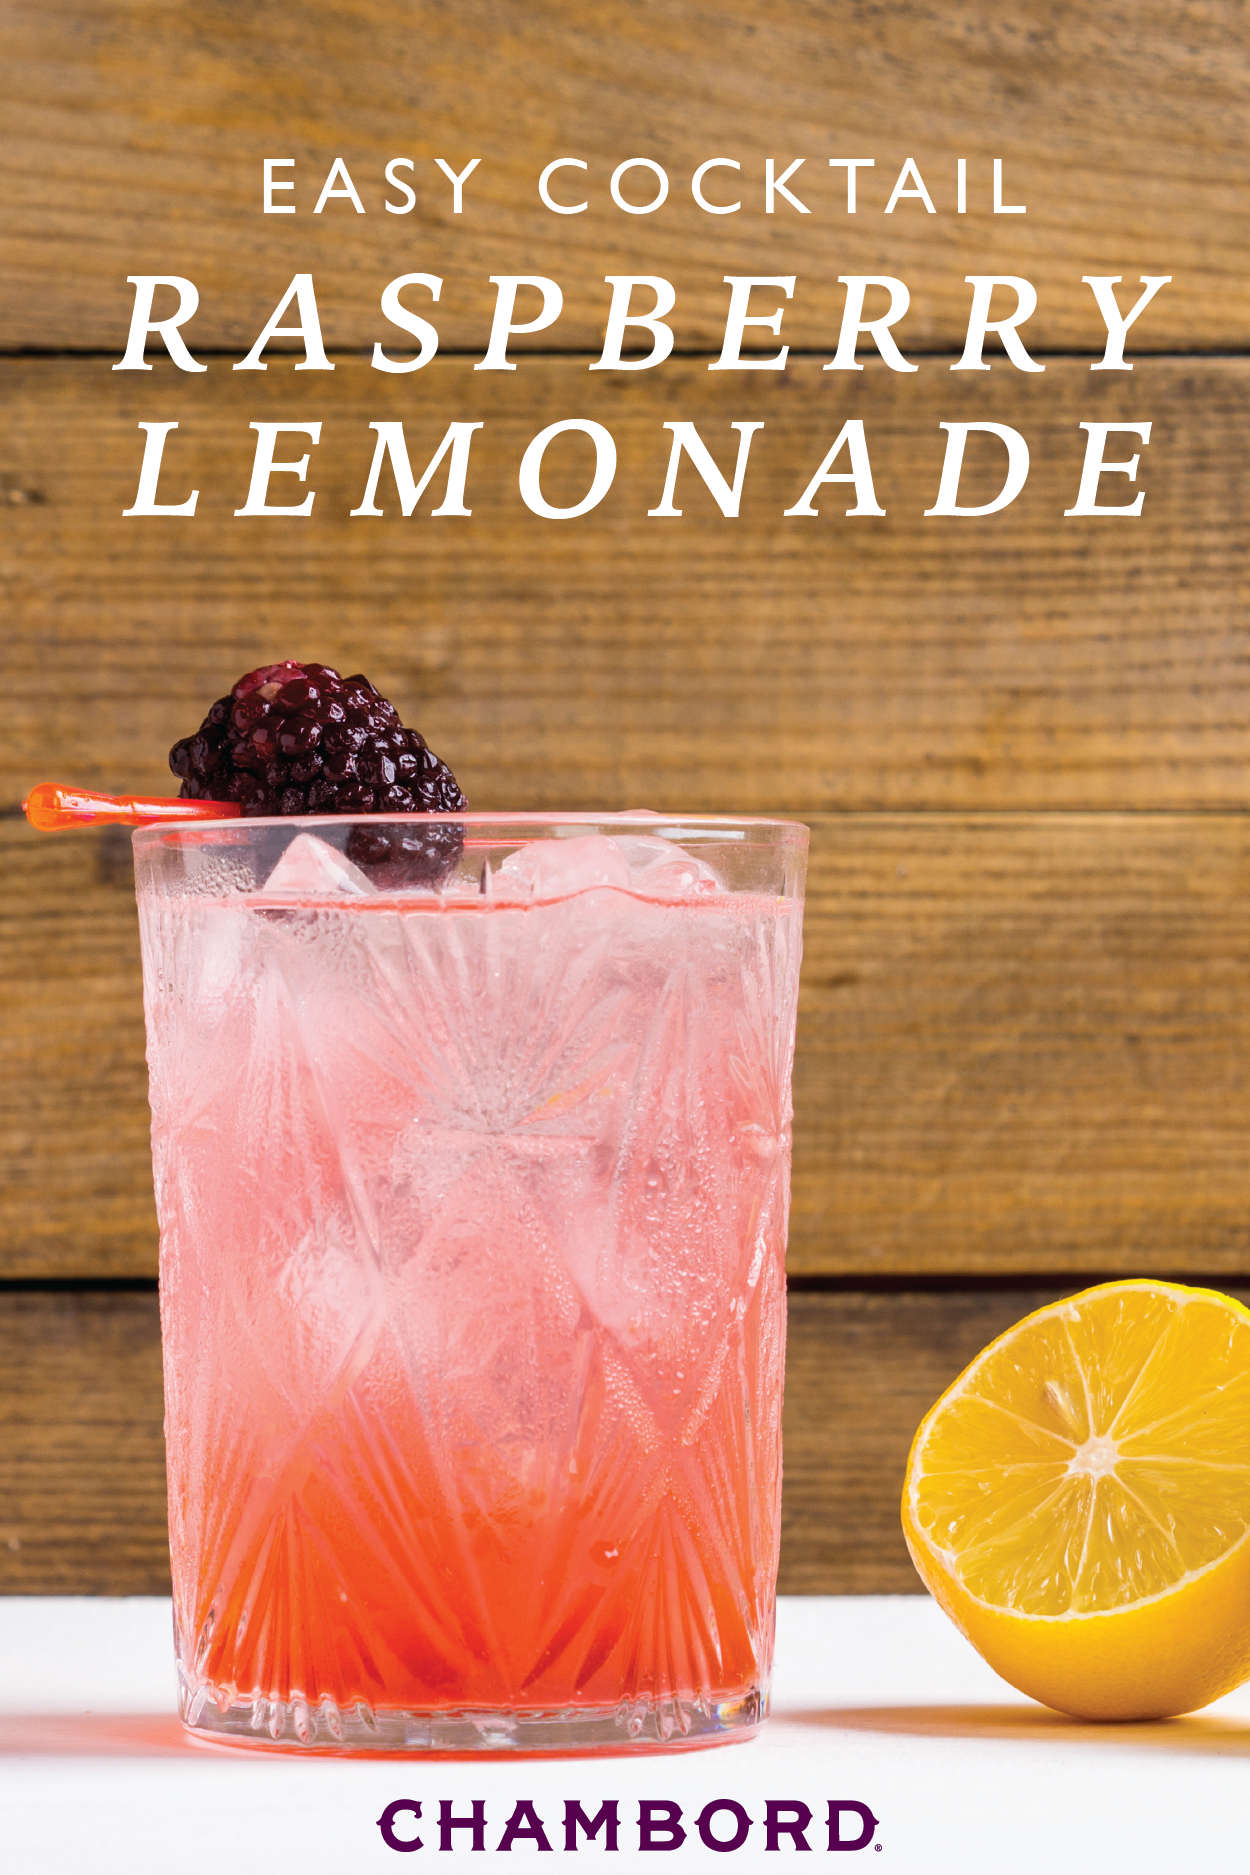 chambord and lemonade